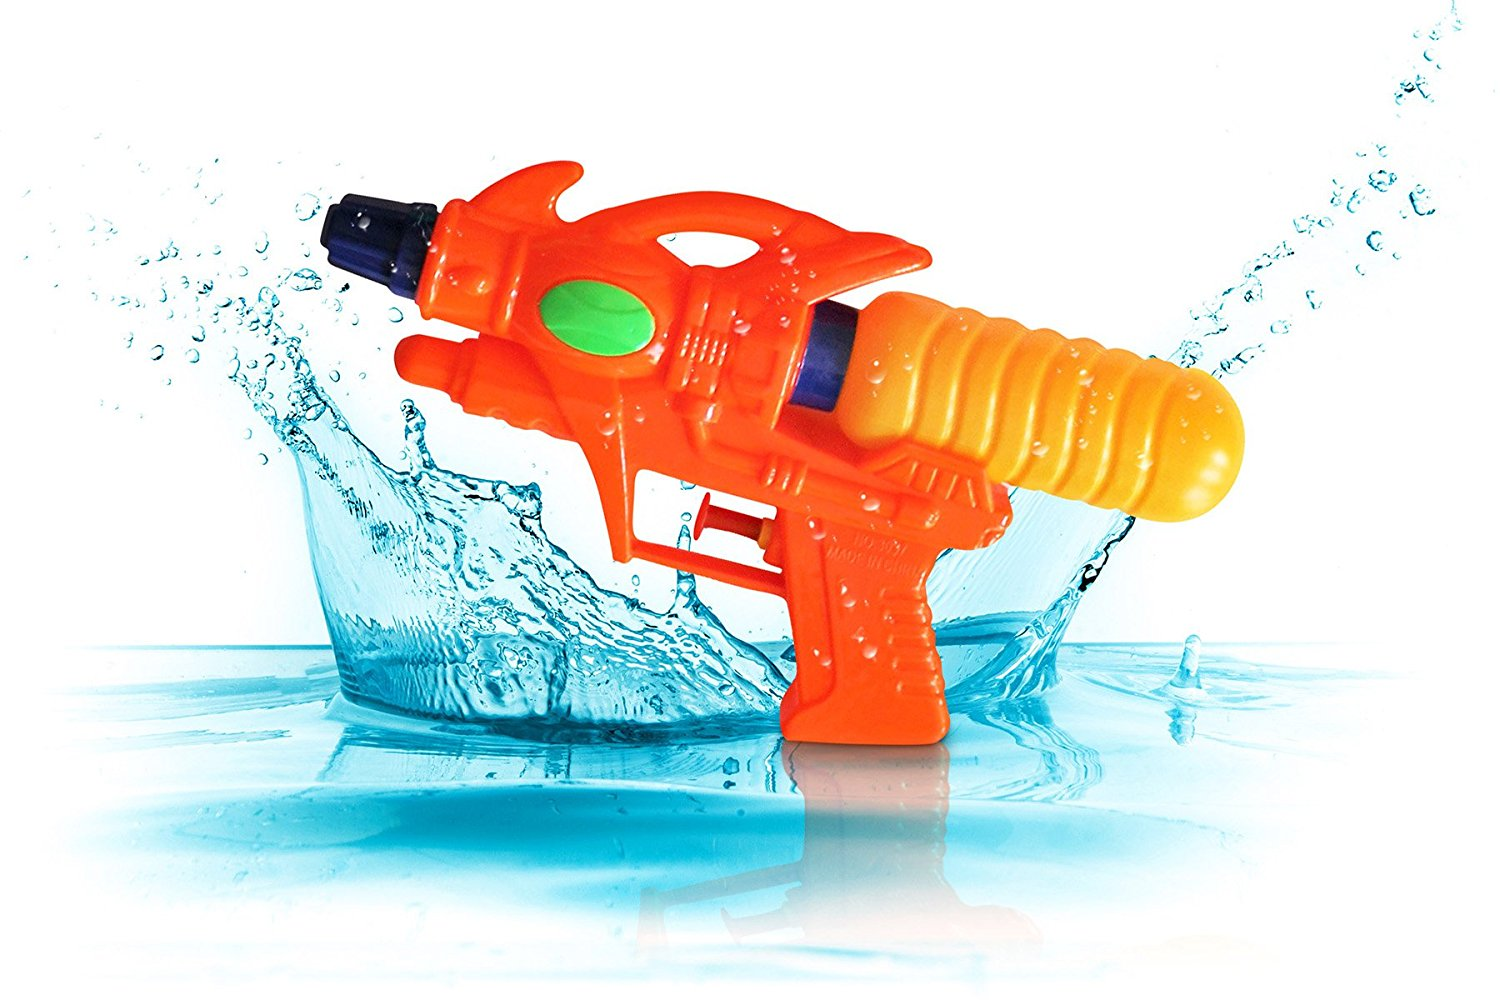 Water Shooter Guns (6 Pack) for Kids and Children - Fun Toy Pistol Sprayer for Summer Outdoor Sports Activity Games   Assorted Colors